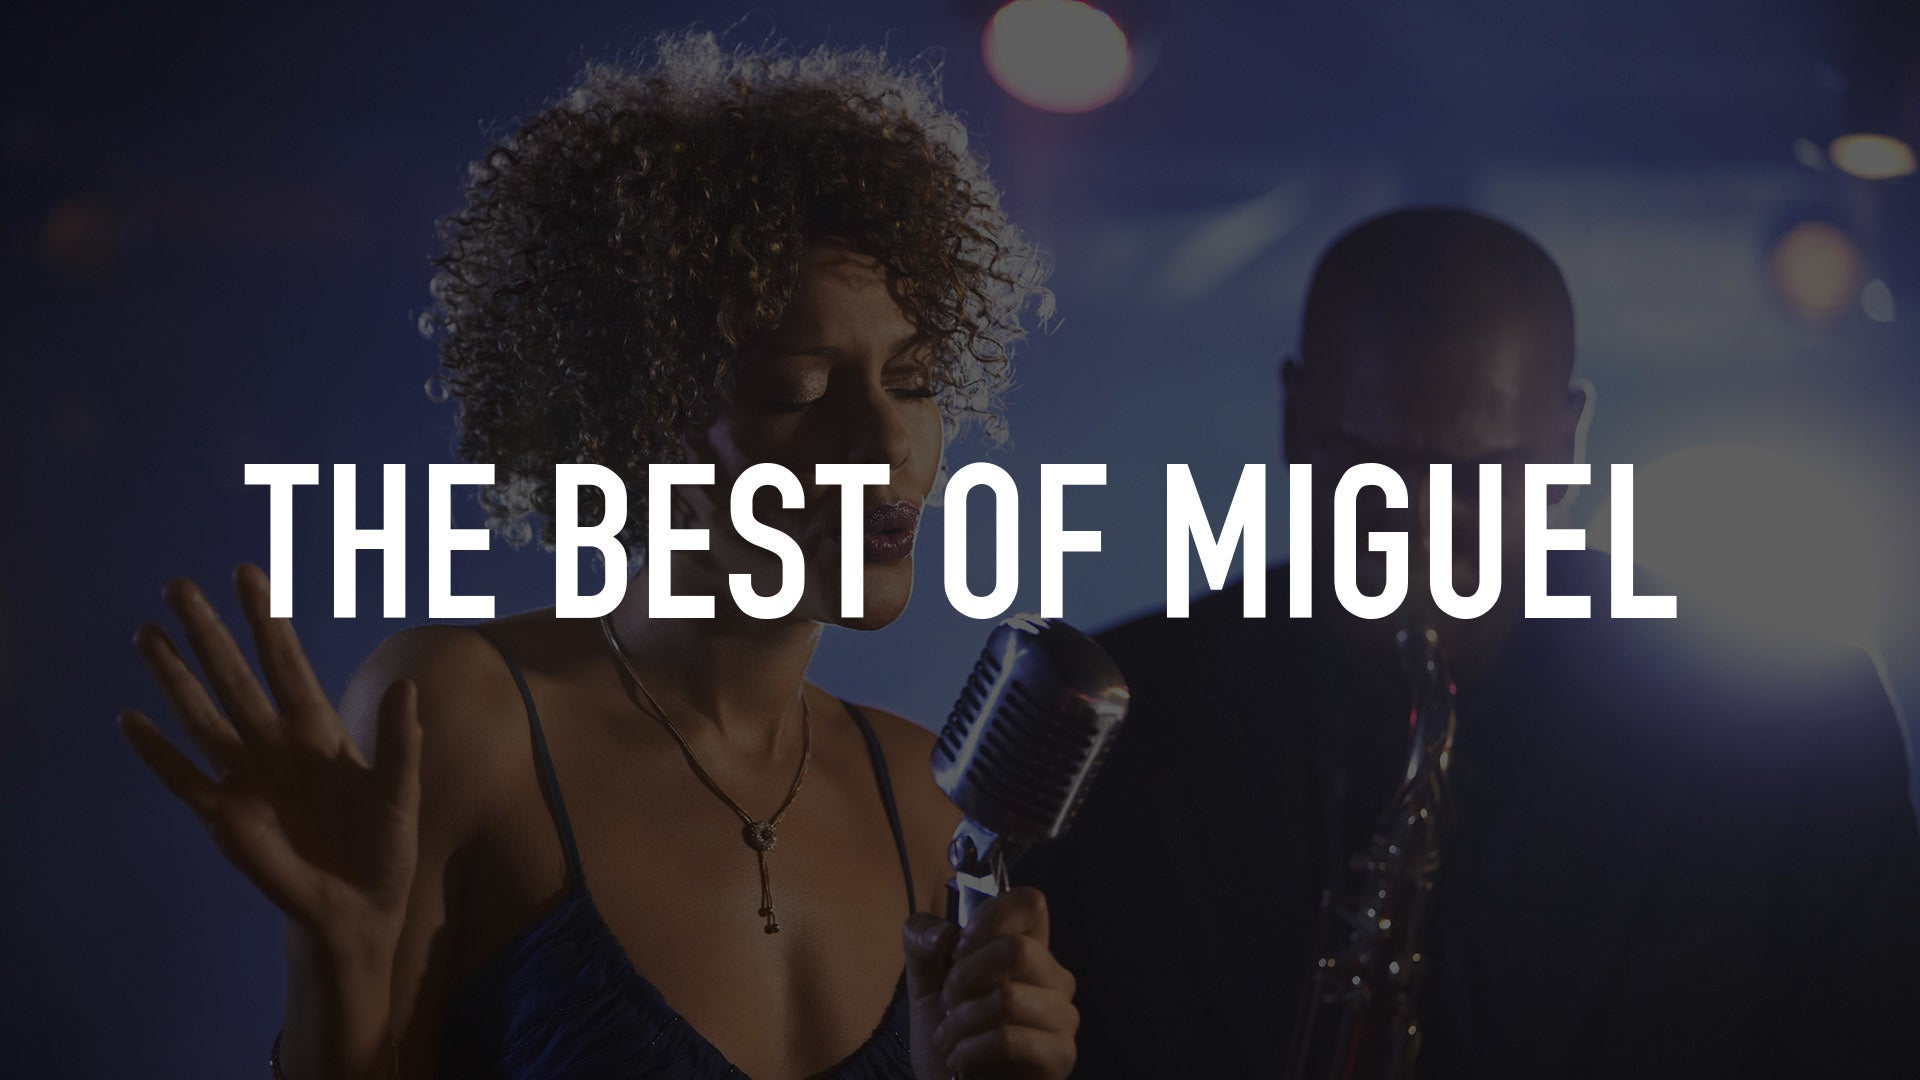 The Best of Miguel